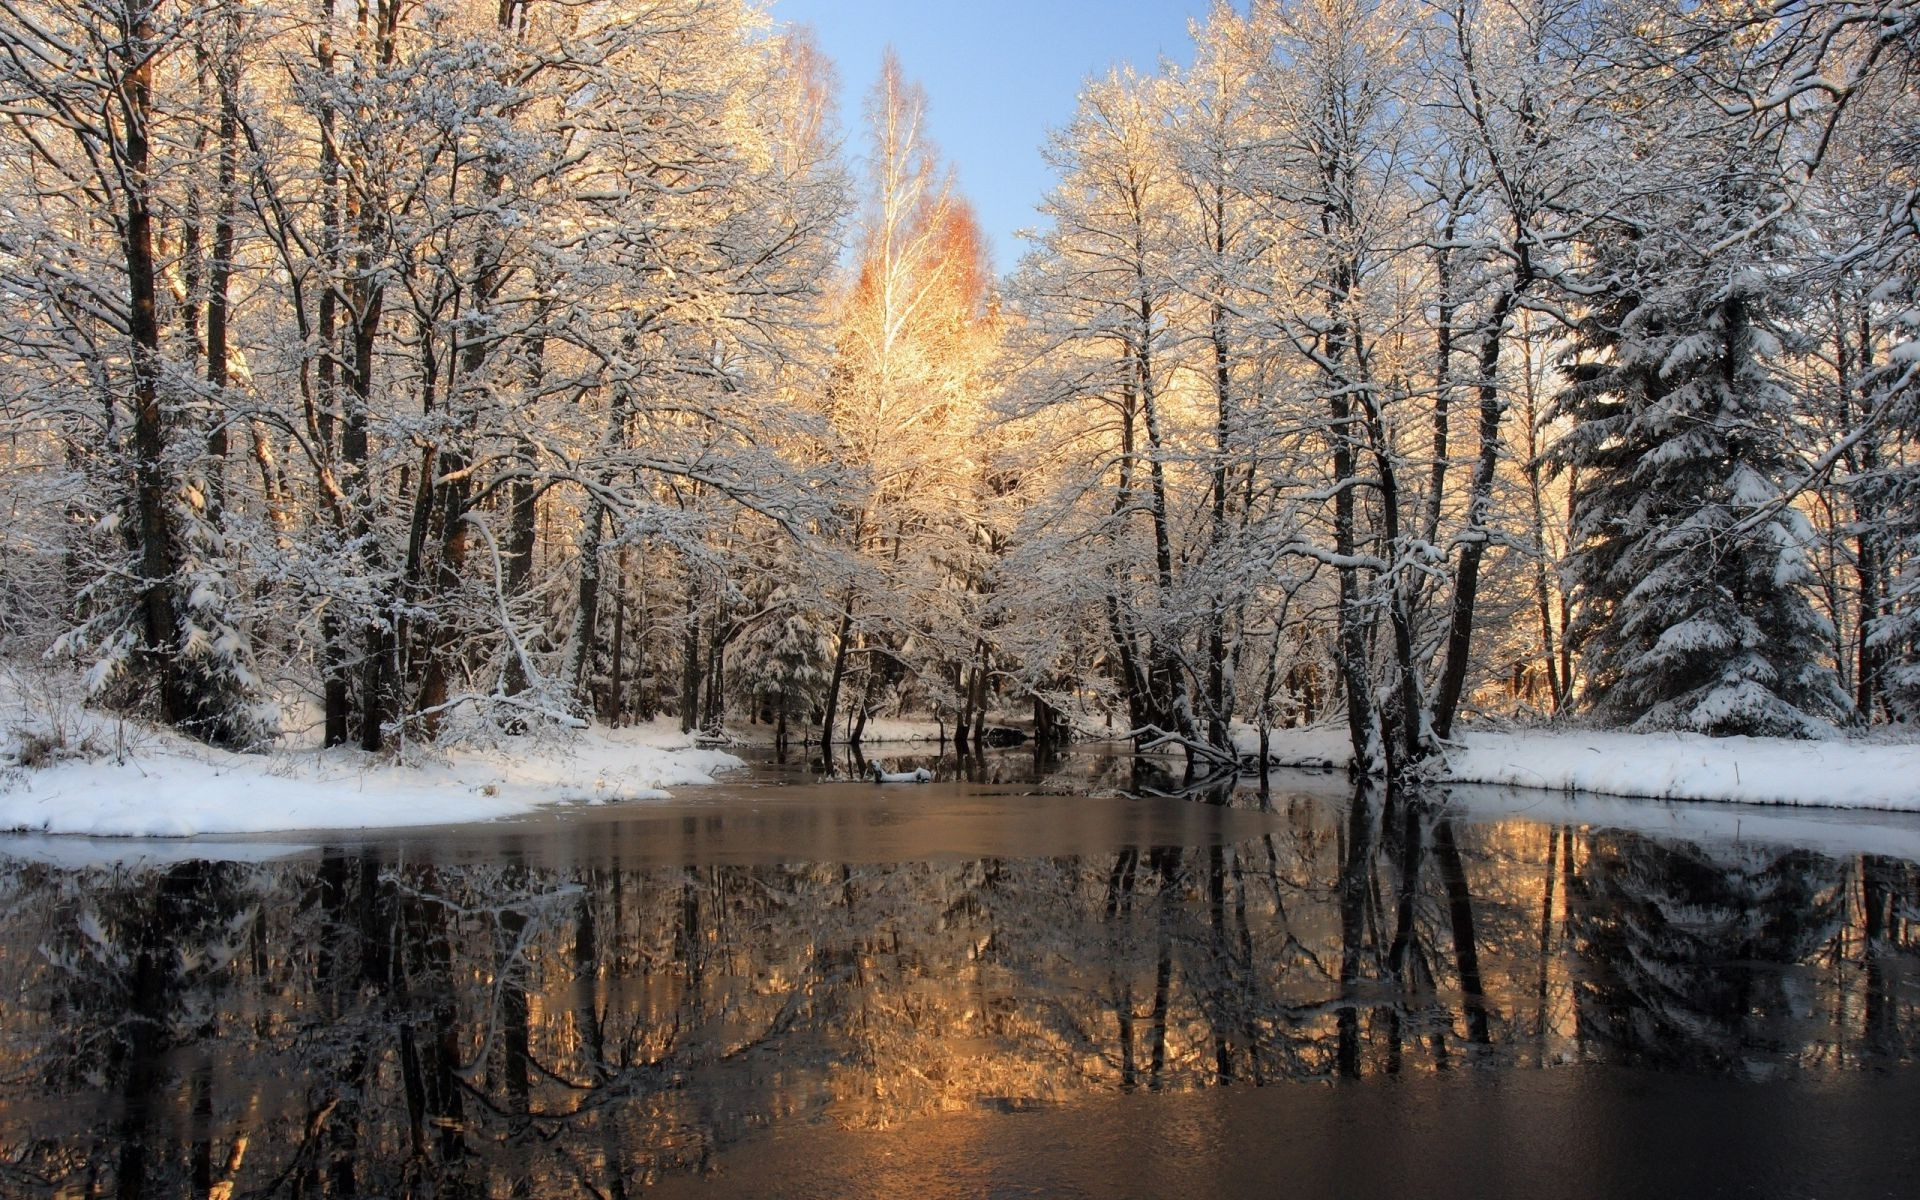 Rivers Ponds And Streams Wood Winter Snow Tree Fall - Nature Oil Paintings Landscapes - HD Wallpaper